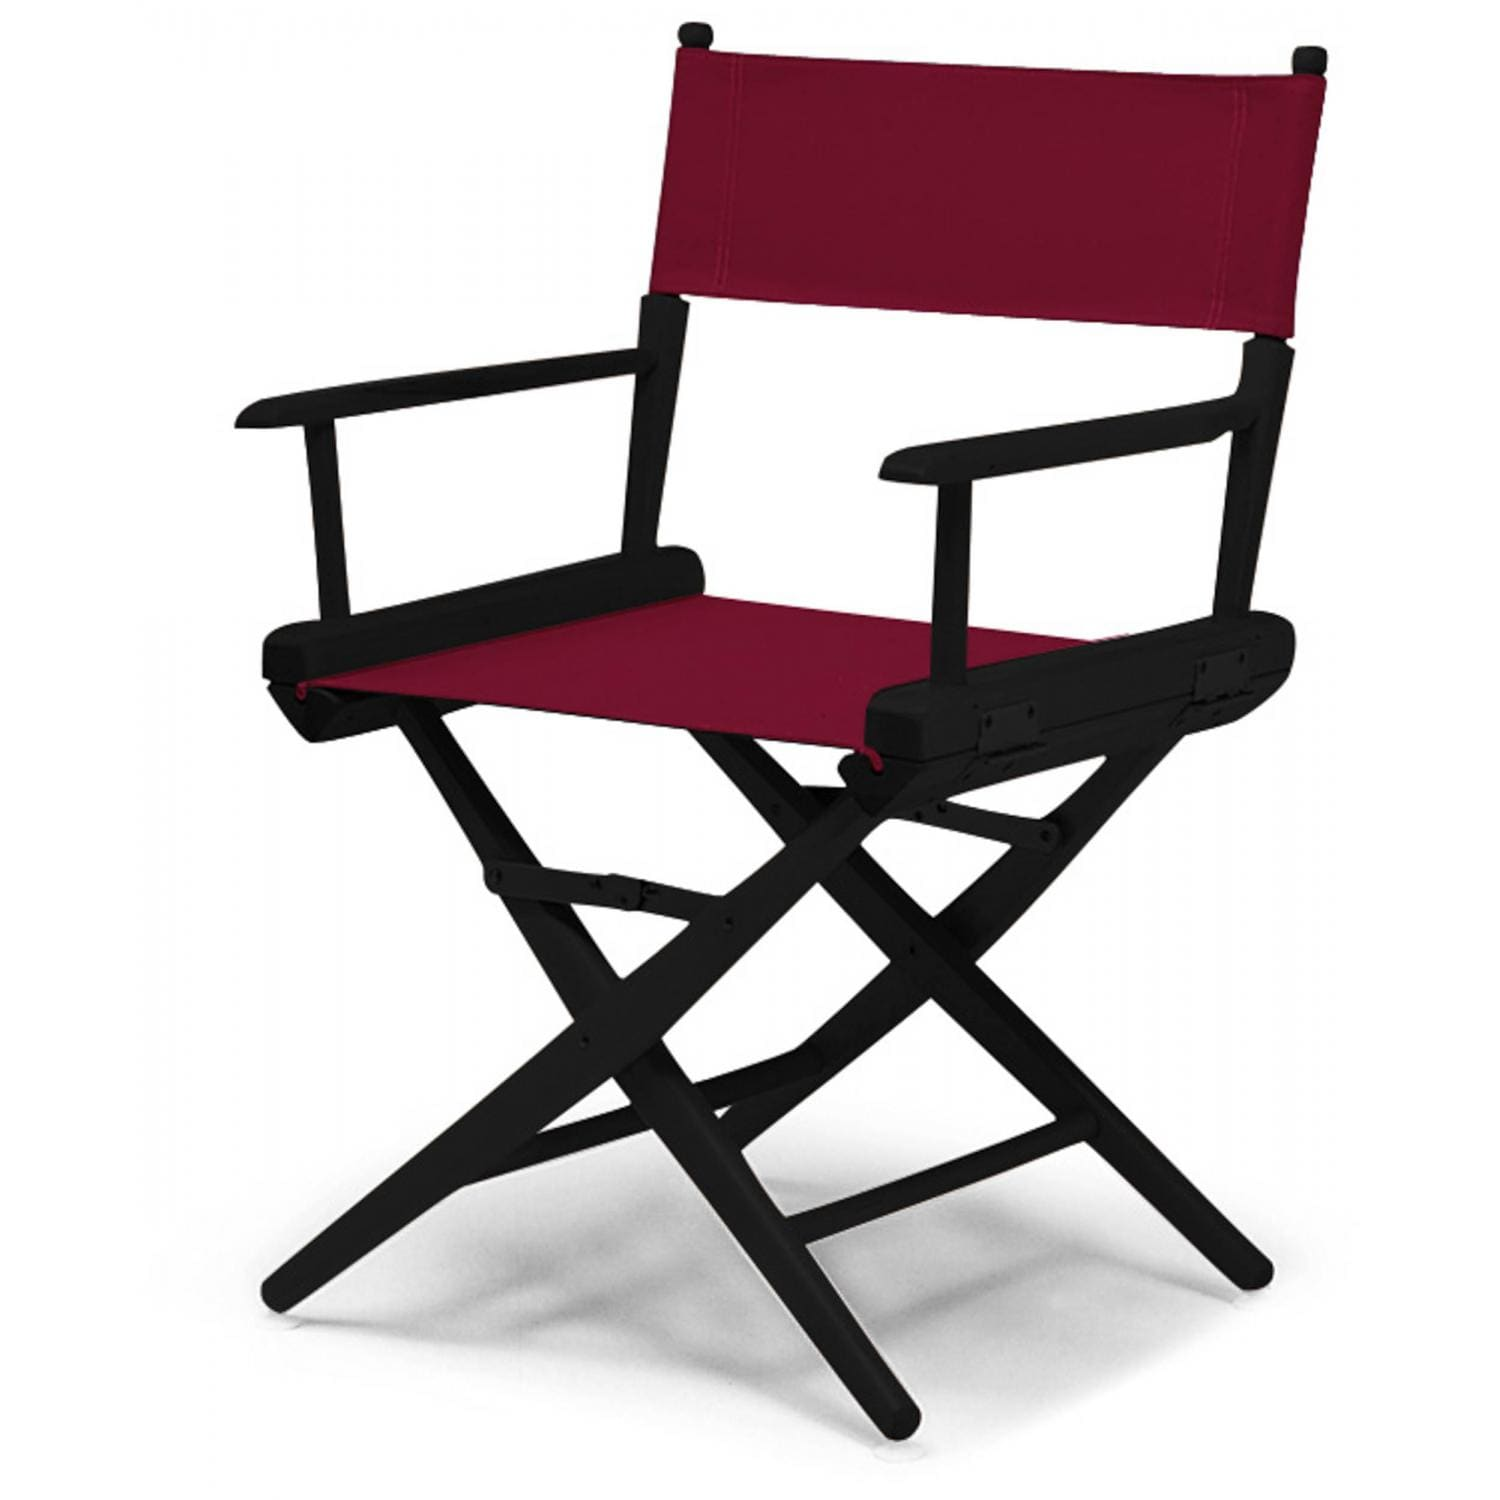 Famous Chair World Famous Dining Height Director Chair By Telescope Casual Black Burgundy